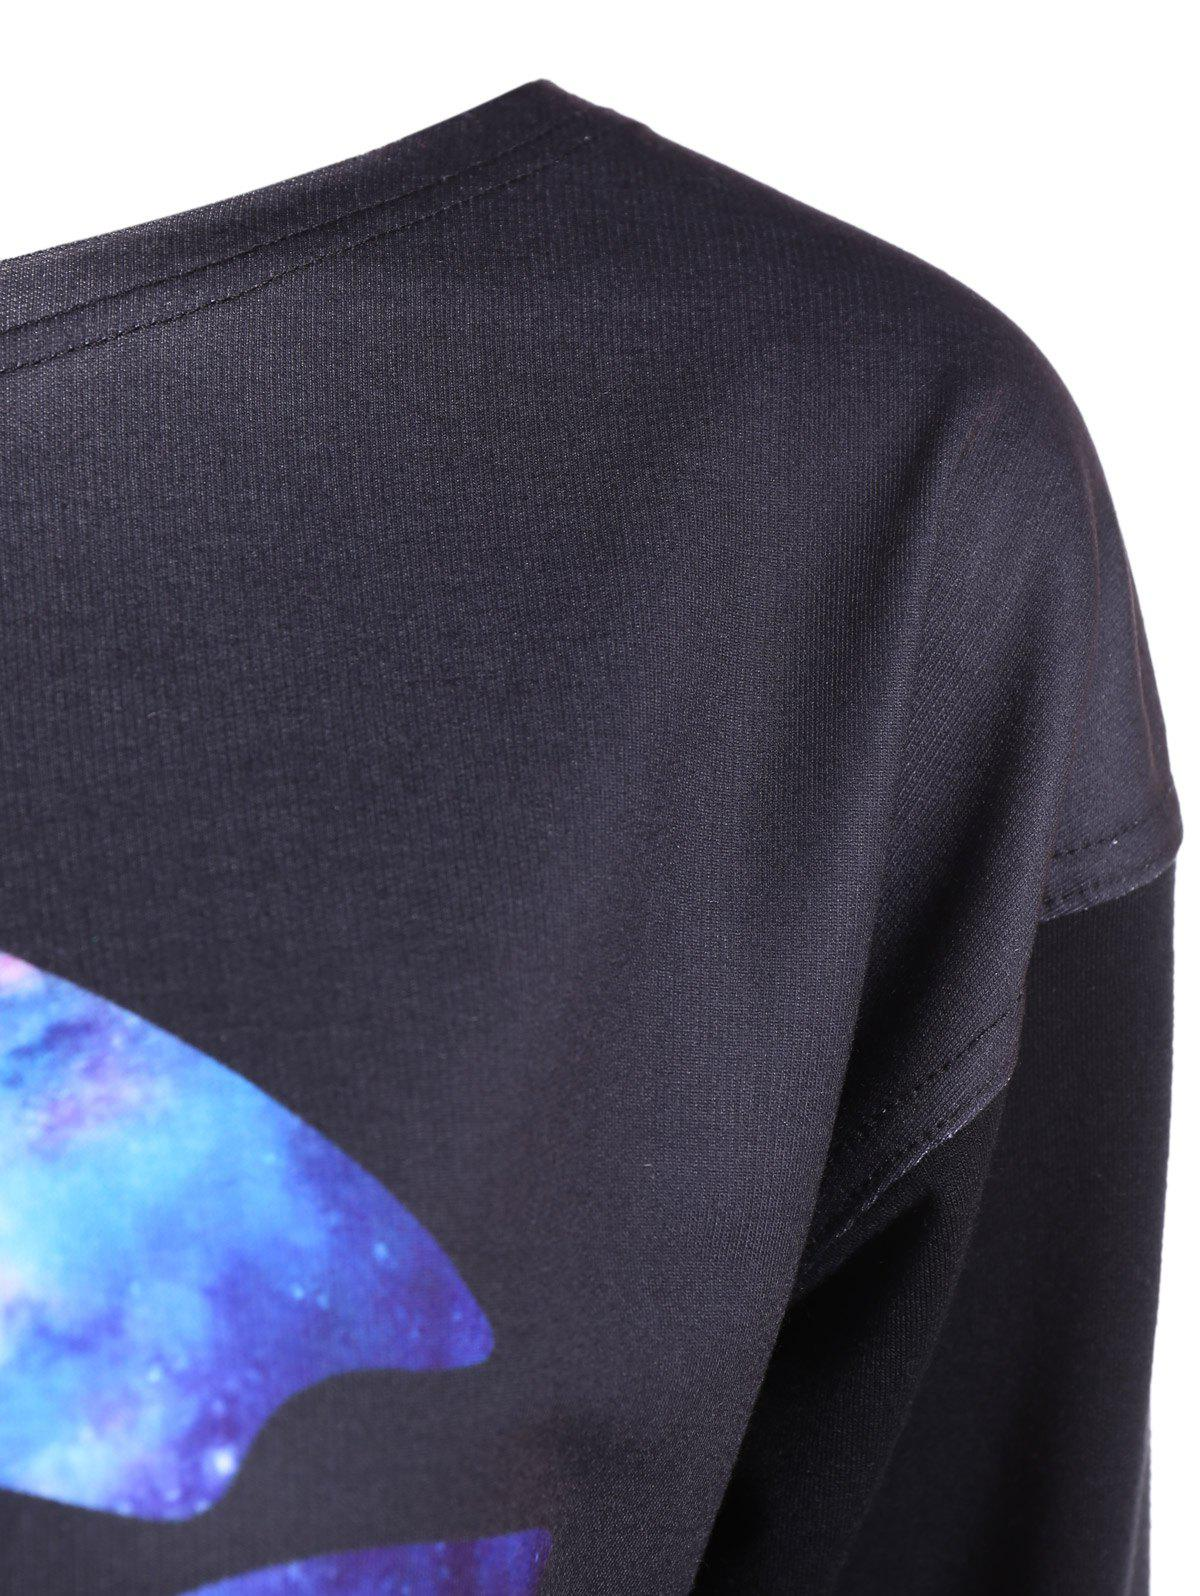 Skew Neck Lip Sweatshirt - BLACK S